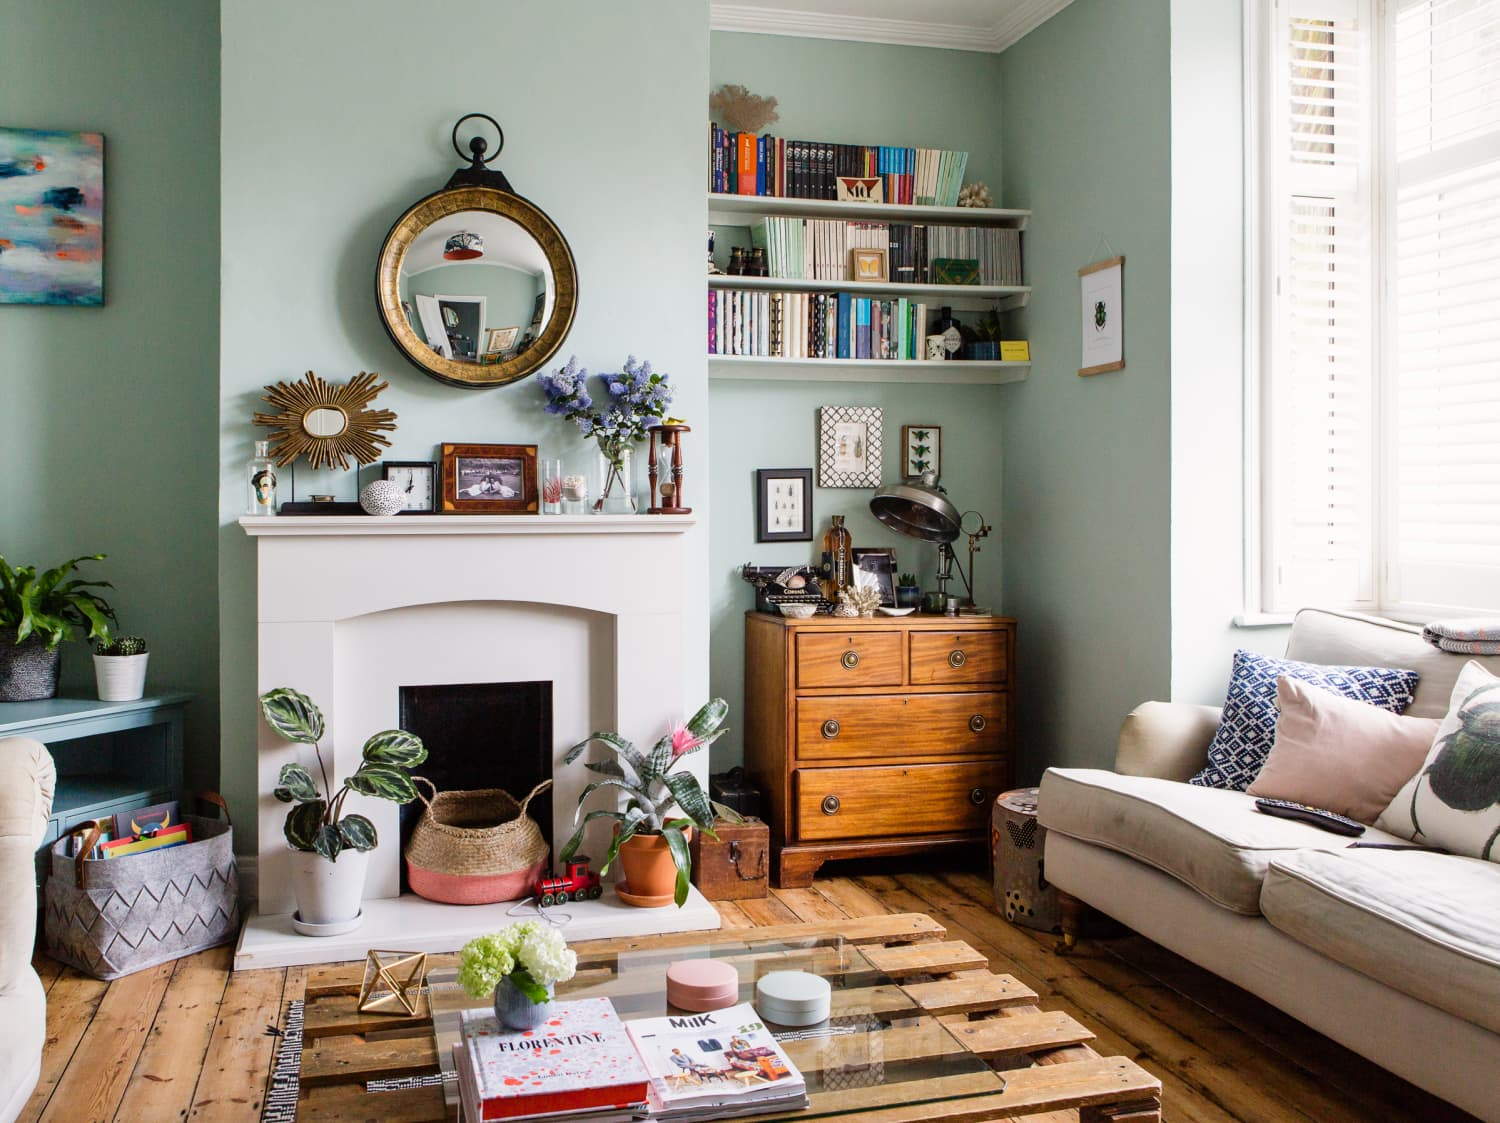 7 Room Layout Rules Totally Worth Breaking in 2020, According to Design Experts